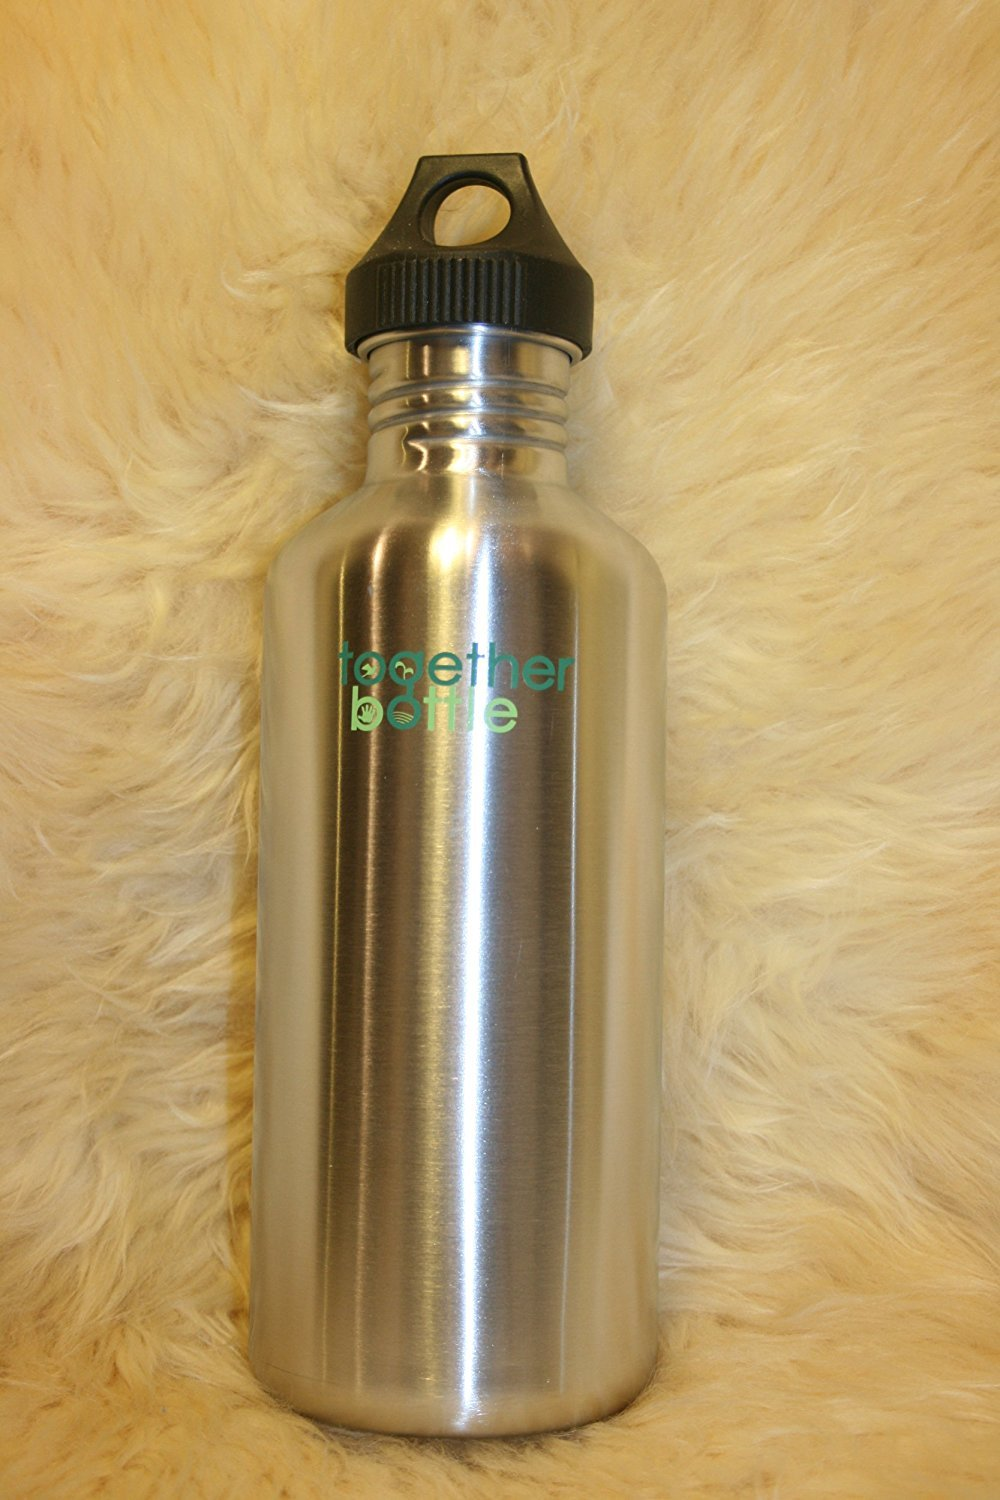 Amazon.com: Together Bottle: 40 Oz Stainless Steel Water Bottle ...